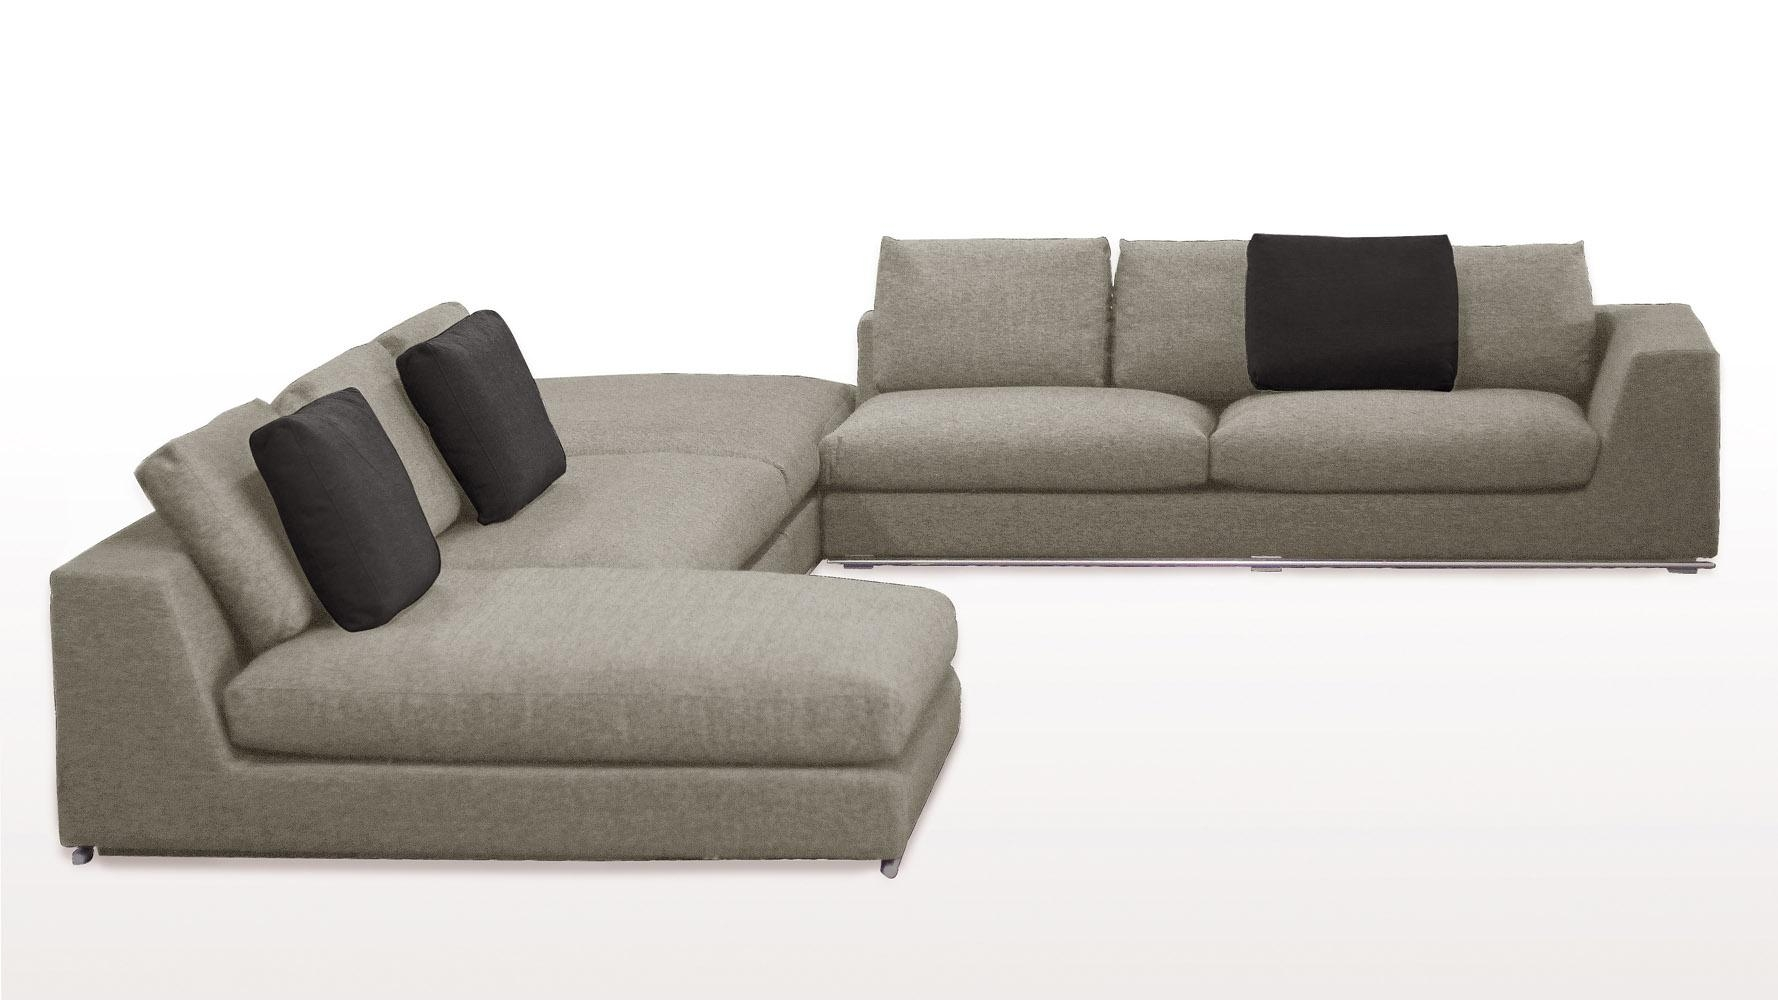 Comodo Sectional Sofa With Ottoman – Grey | Zuri Furniture For Goose Down Sectional Sofa (View 14 of 15)